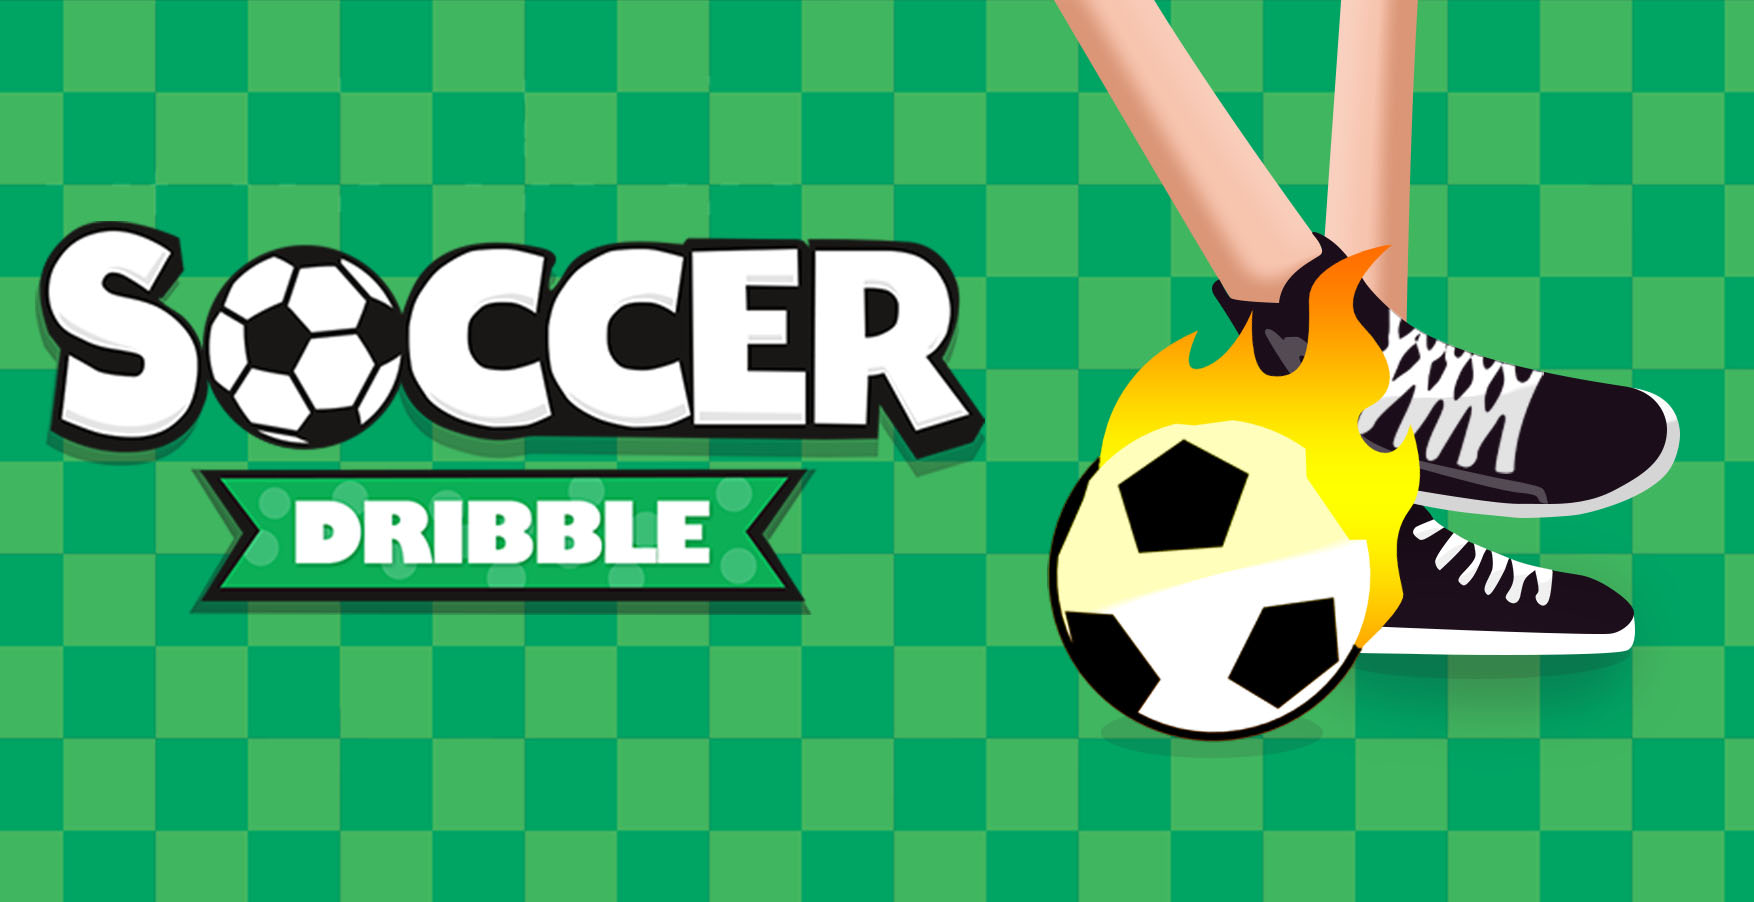 Soccer Dribble – Dribbling Game For iOS and Android